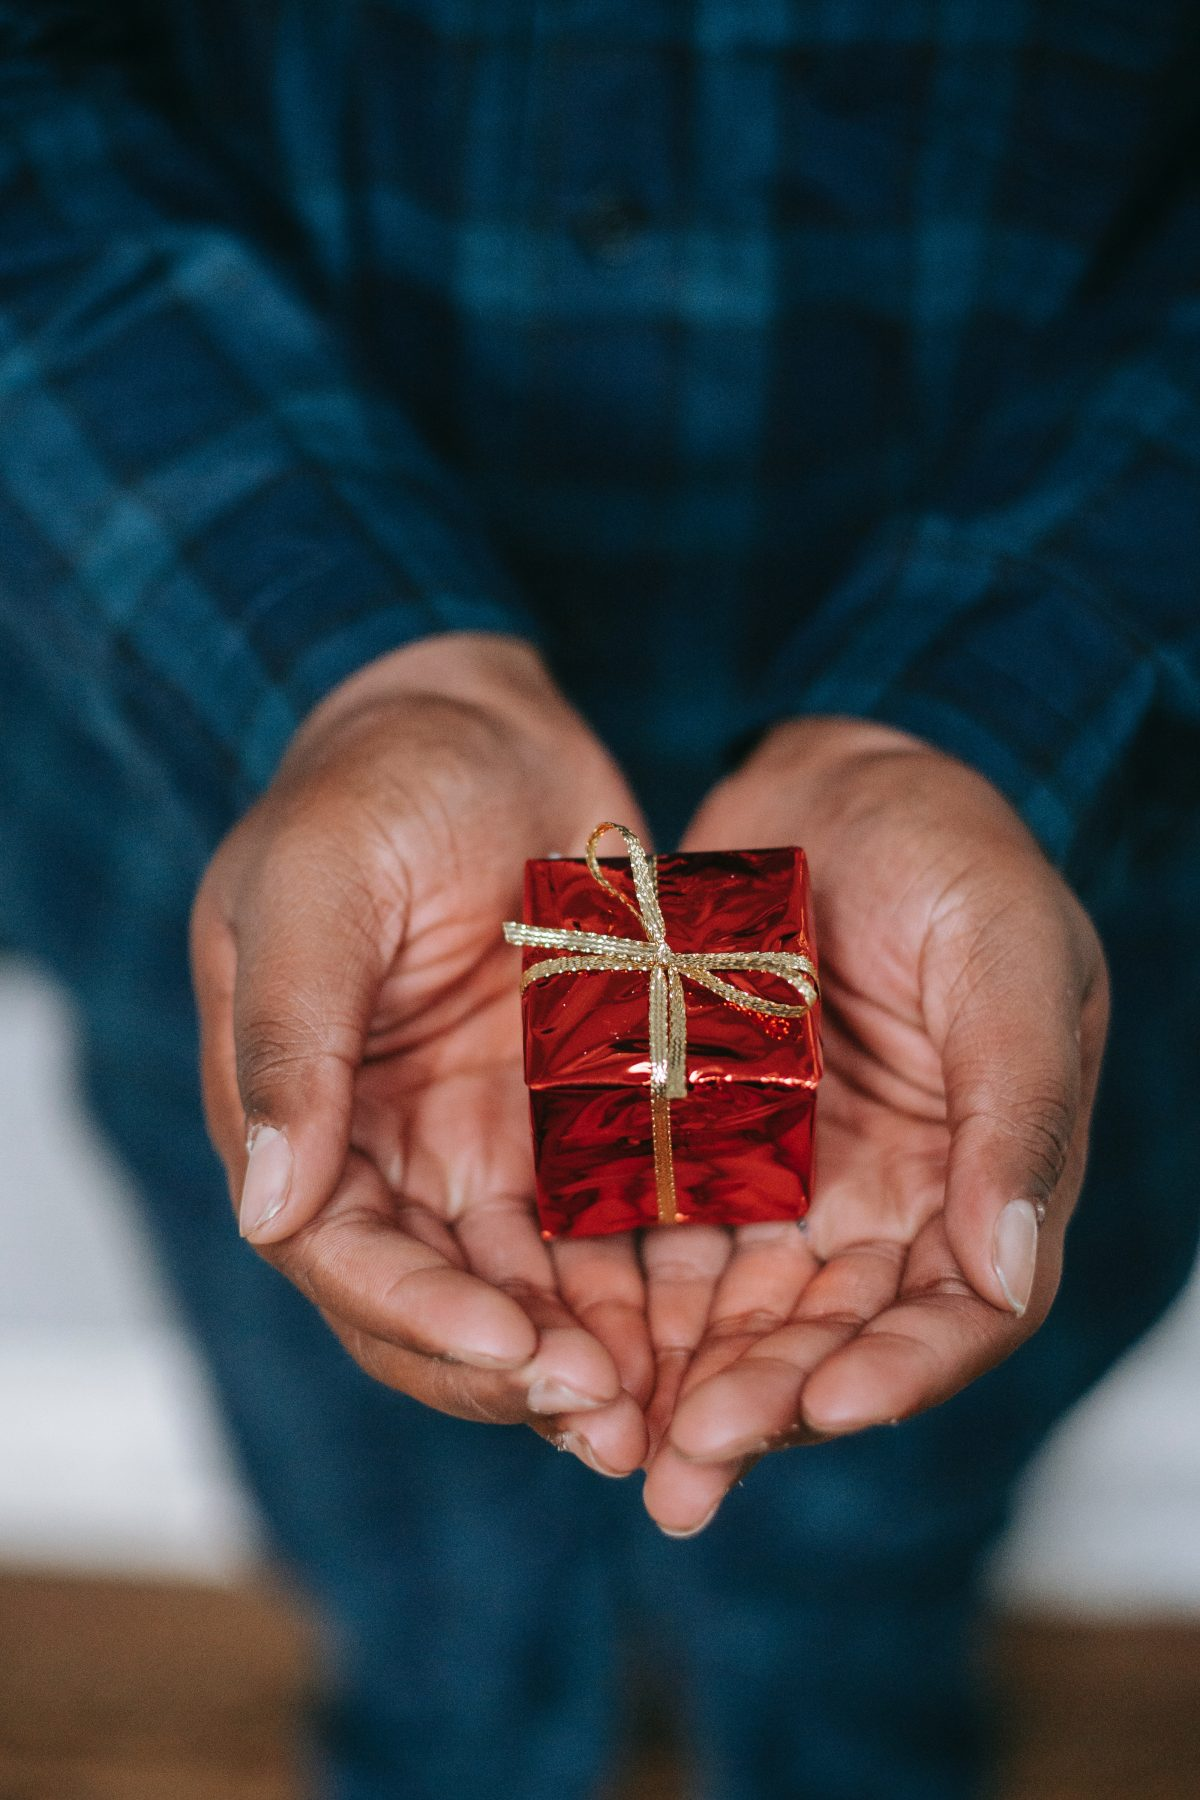 black man's hands holding red gift box